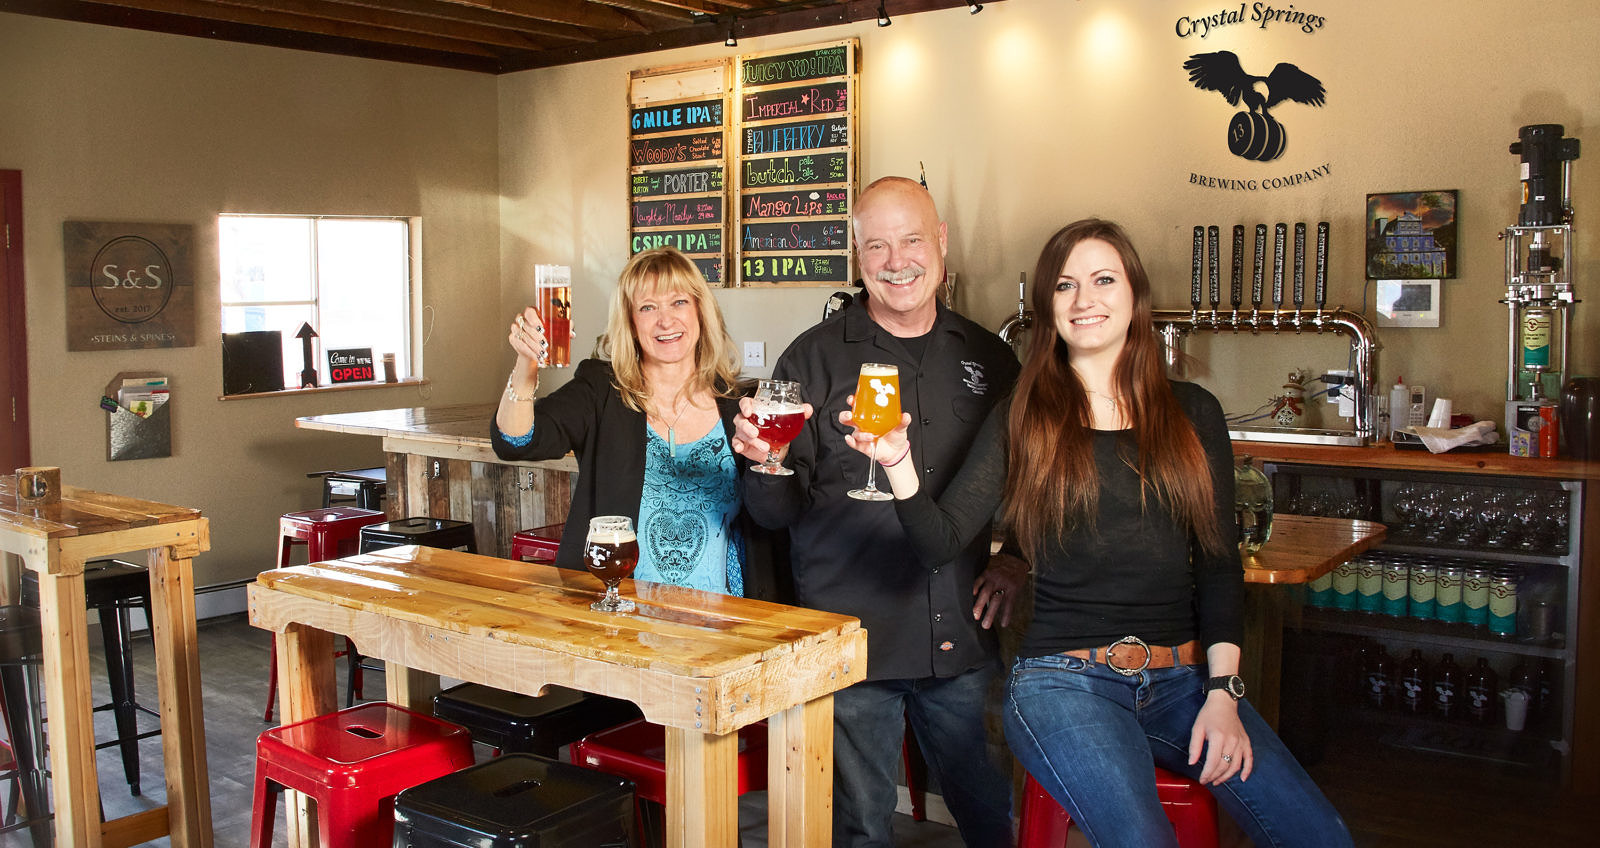 Featured Business: Crystal Springs Downtown Taproom